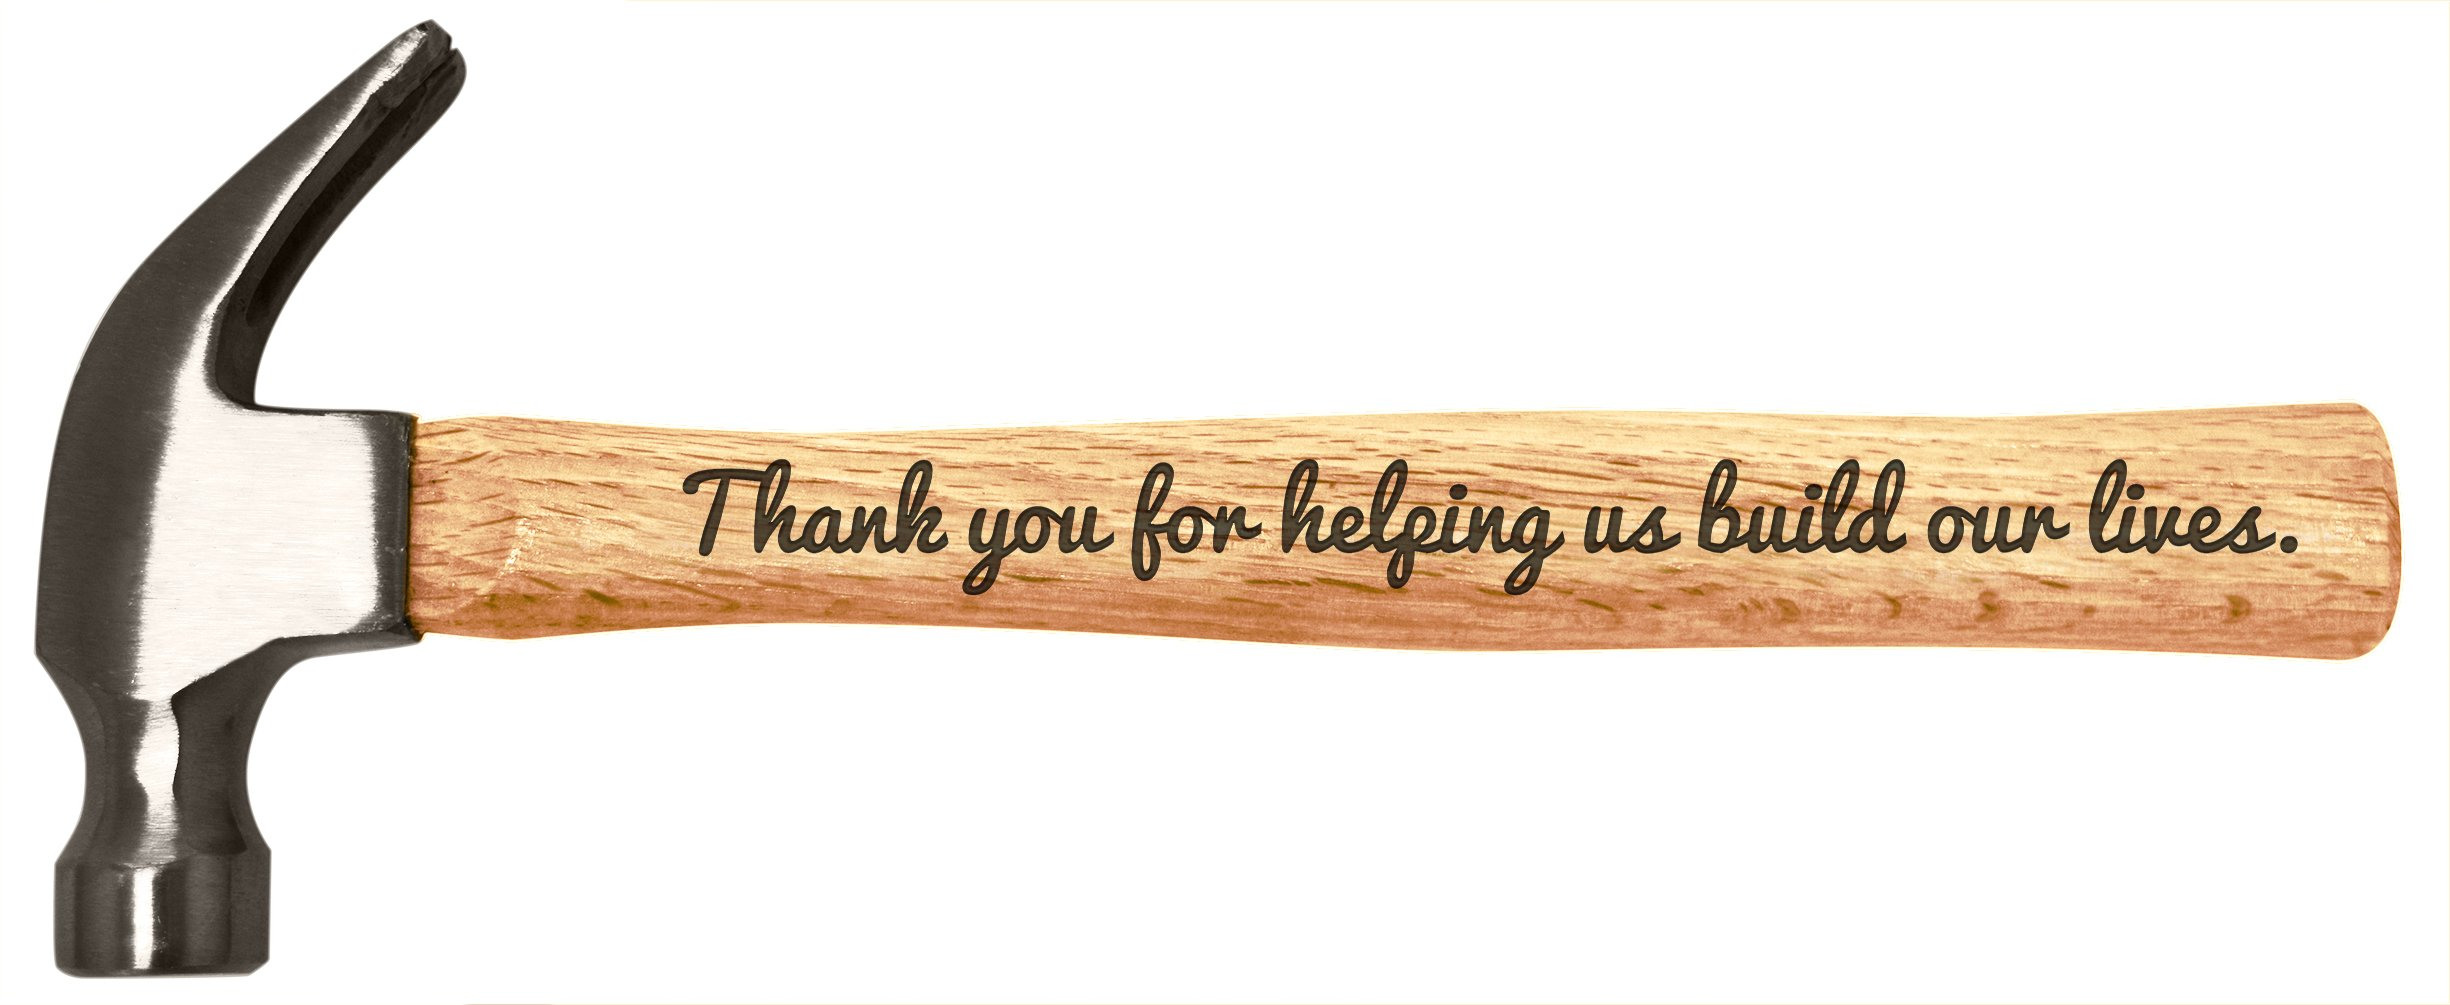 Christmas Gift for Dad Grandpa Uncle Thank You for Helping Us Build Our Lives Father's Day Gift for Dad or Grandpa Engraved Wood Handle Steel Hammer